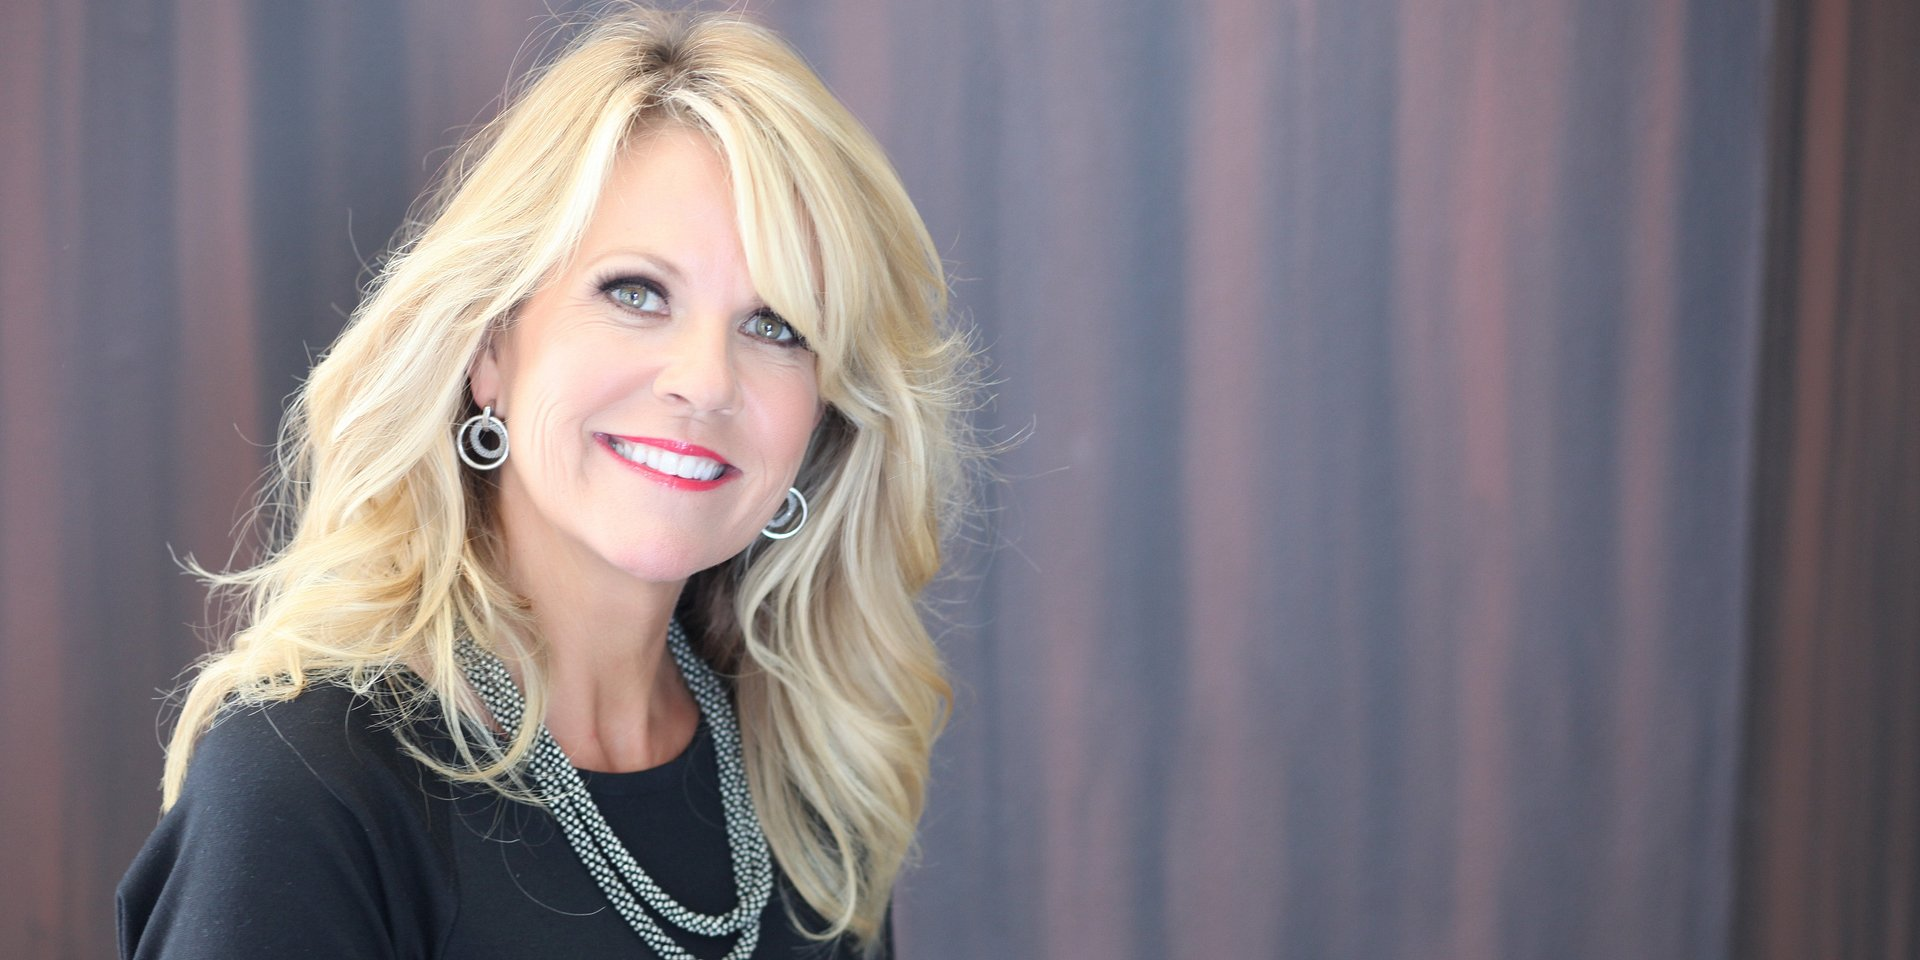 Natalie Brown Affiliates with the Dana Point/San Clemente/San Juan Capistrano Office of Coldwell Banker Realty